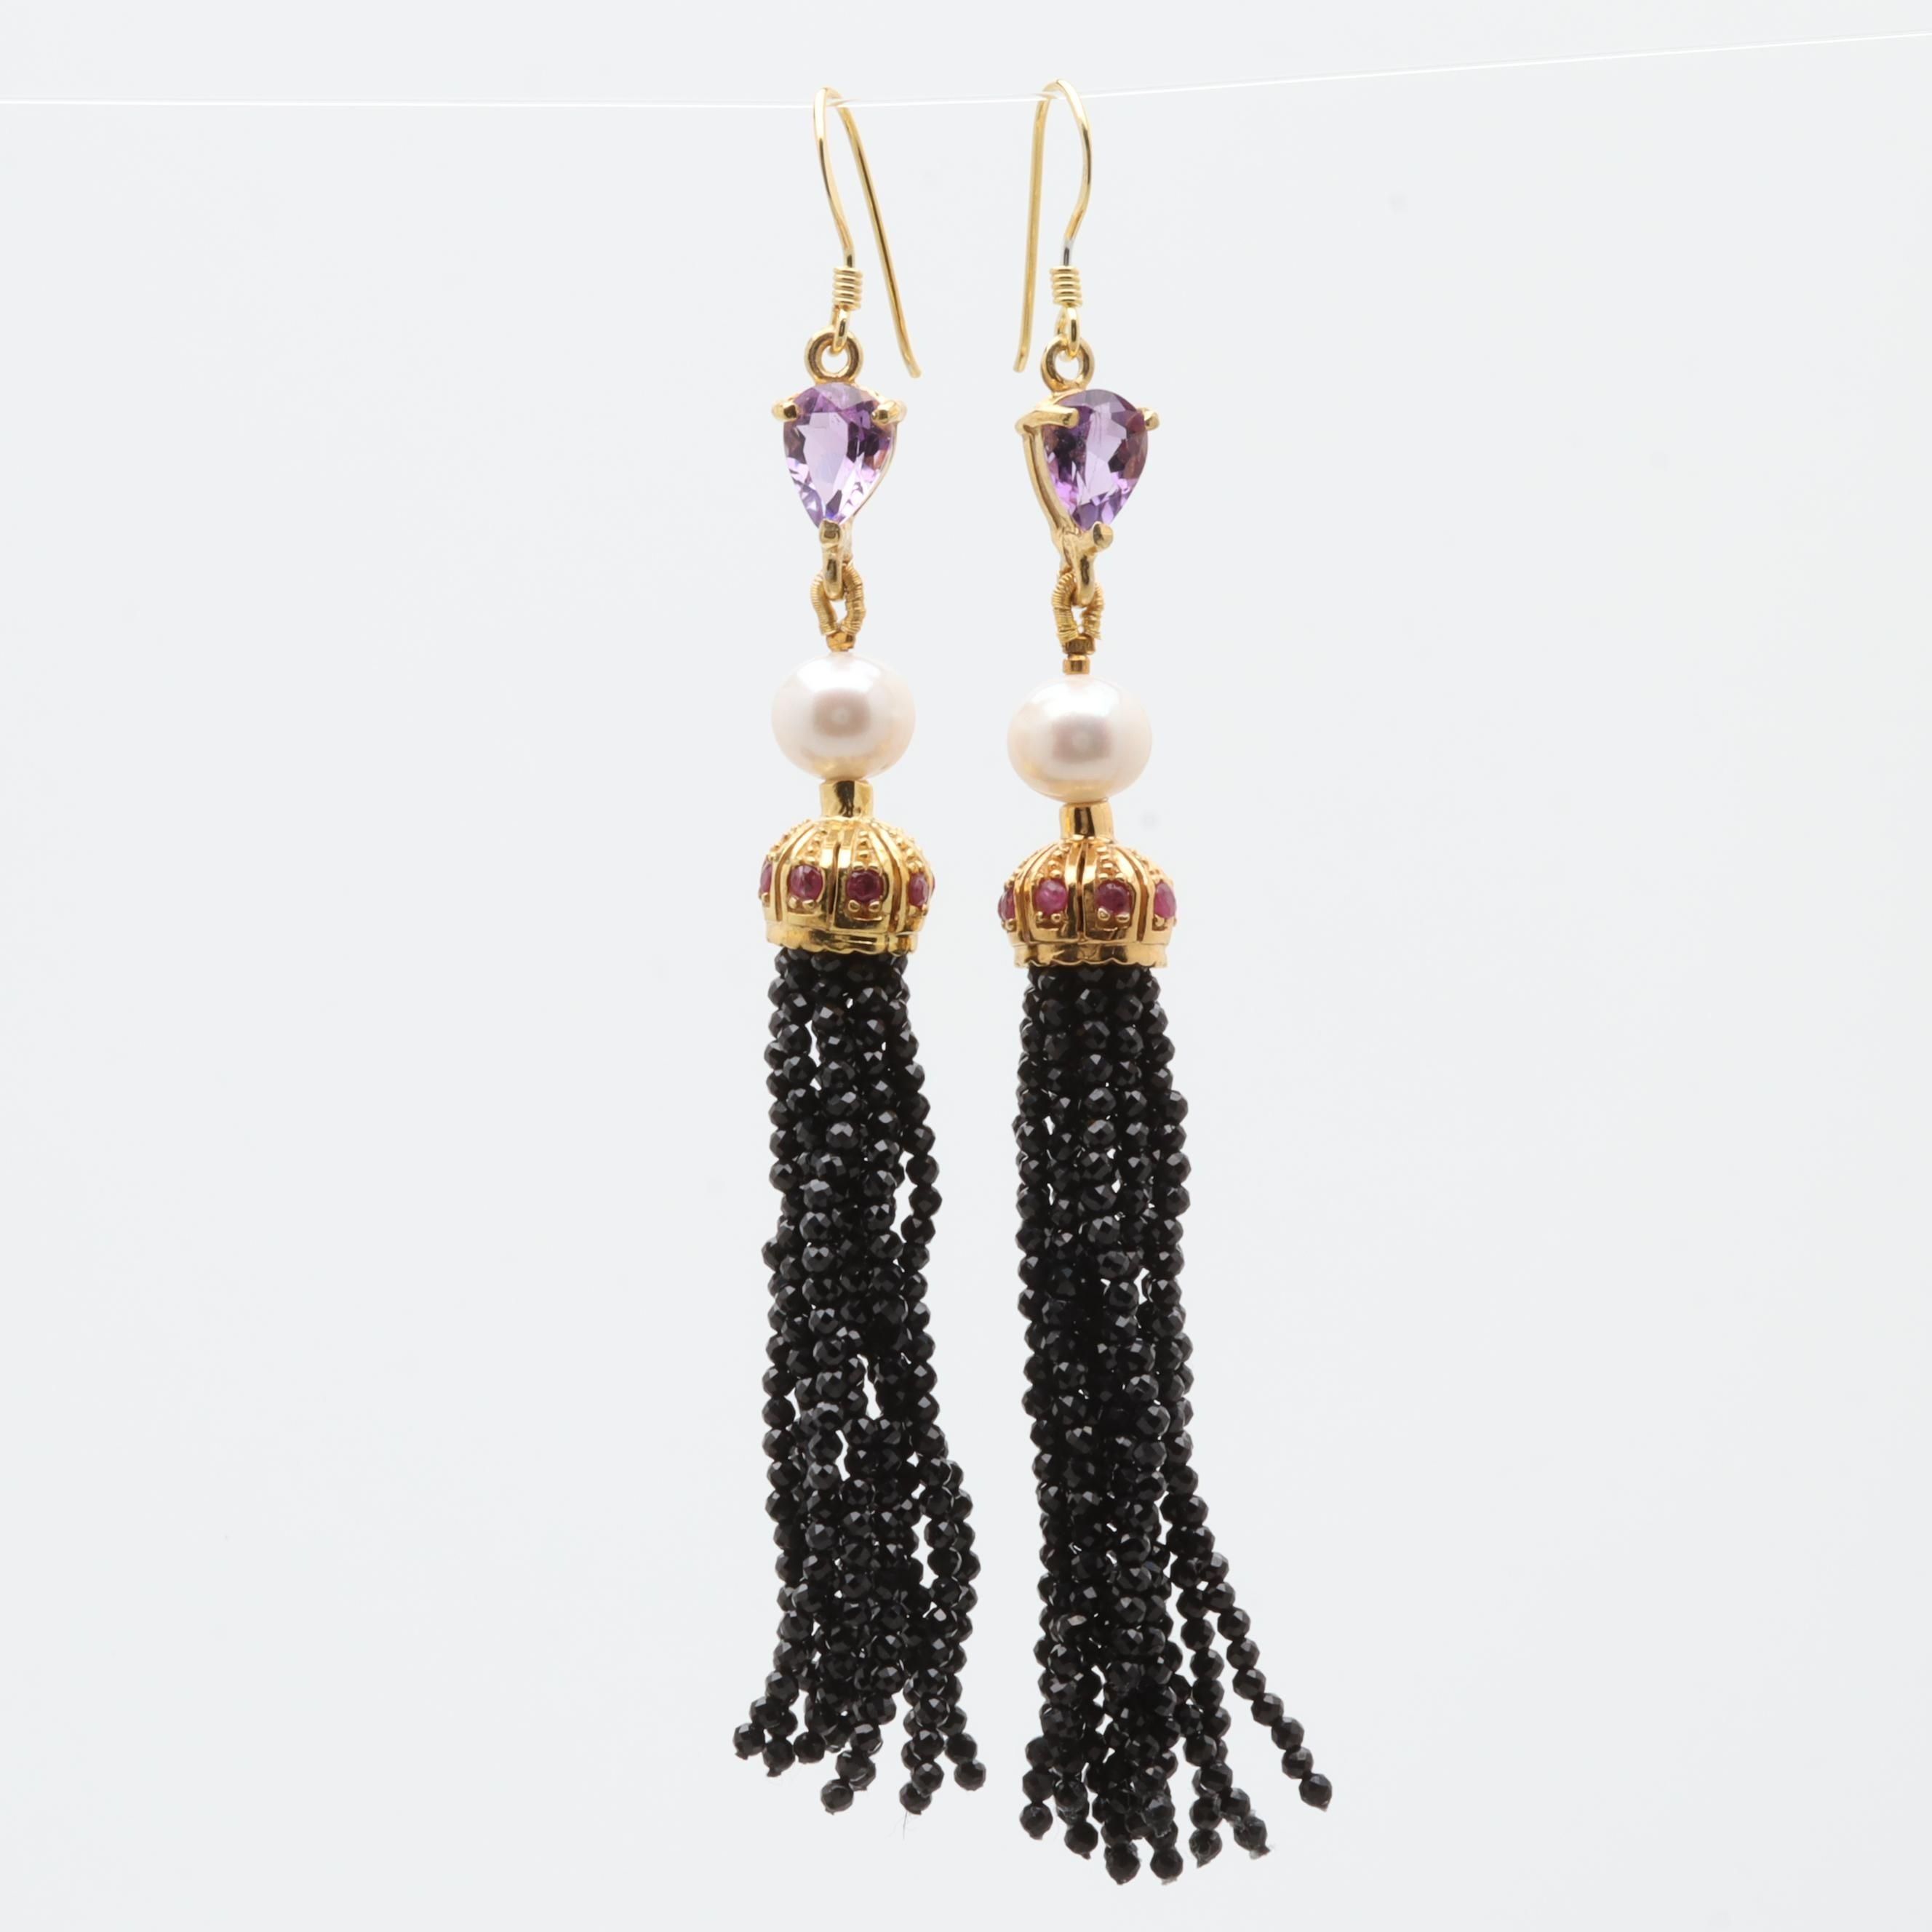 Sterling Silver Cultured Pearl and Gemstone Fringed Earrings